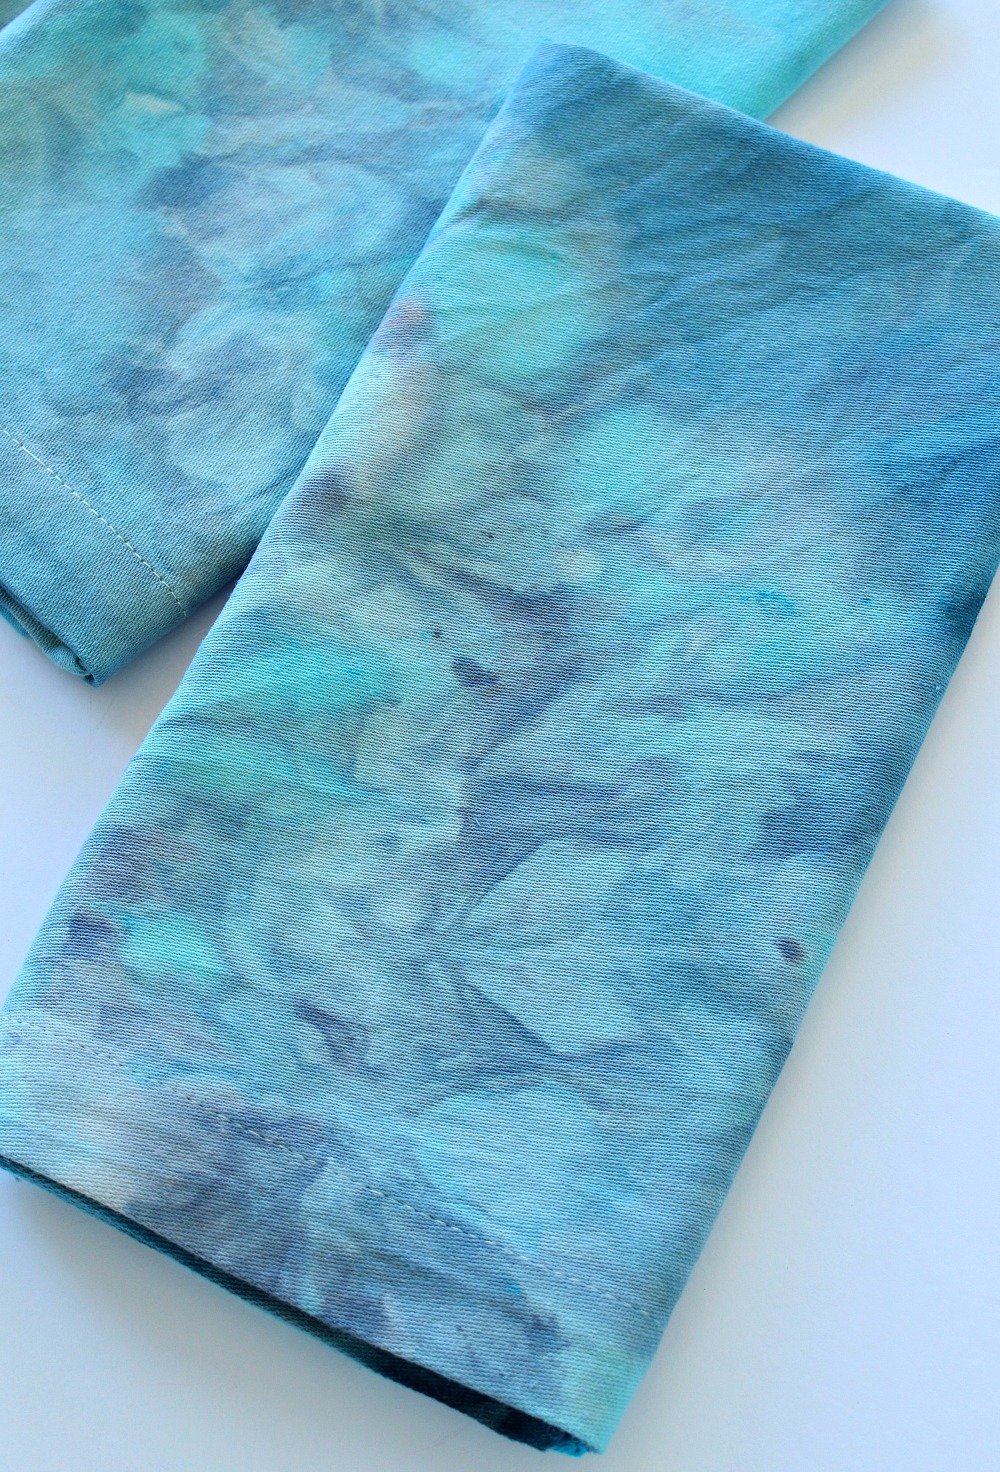 How to Ice Dye Fabric | @danslelakehouse